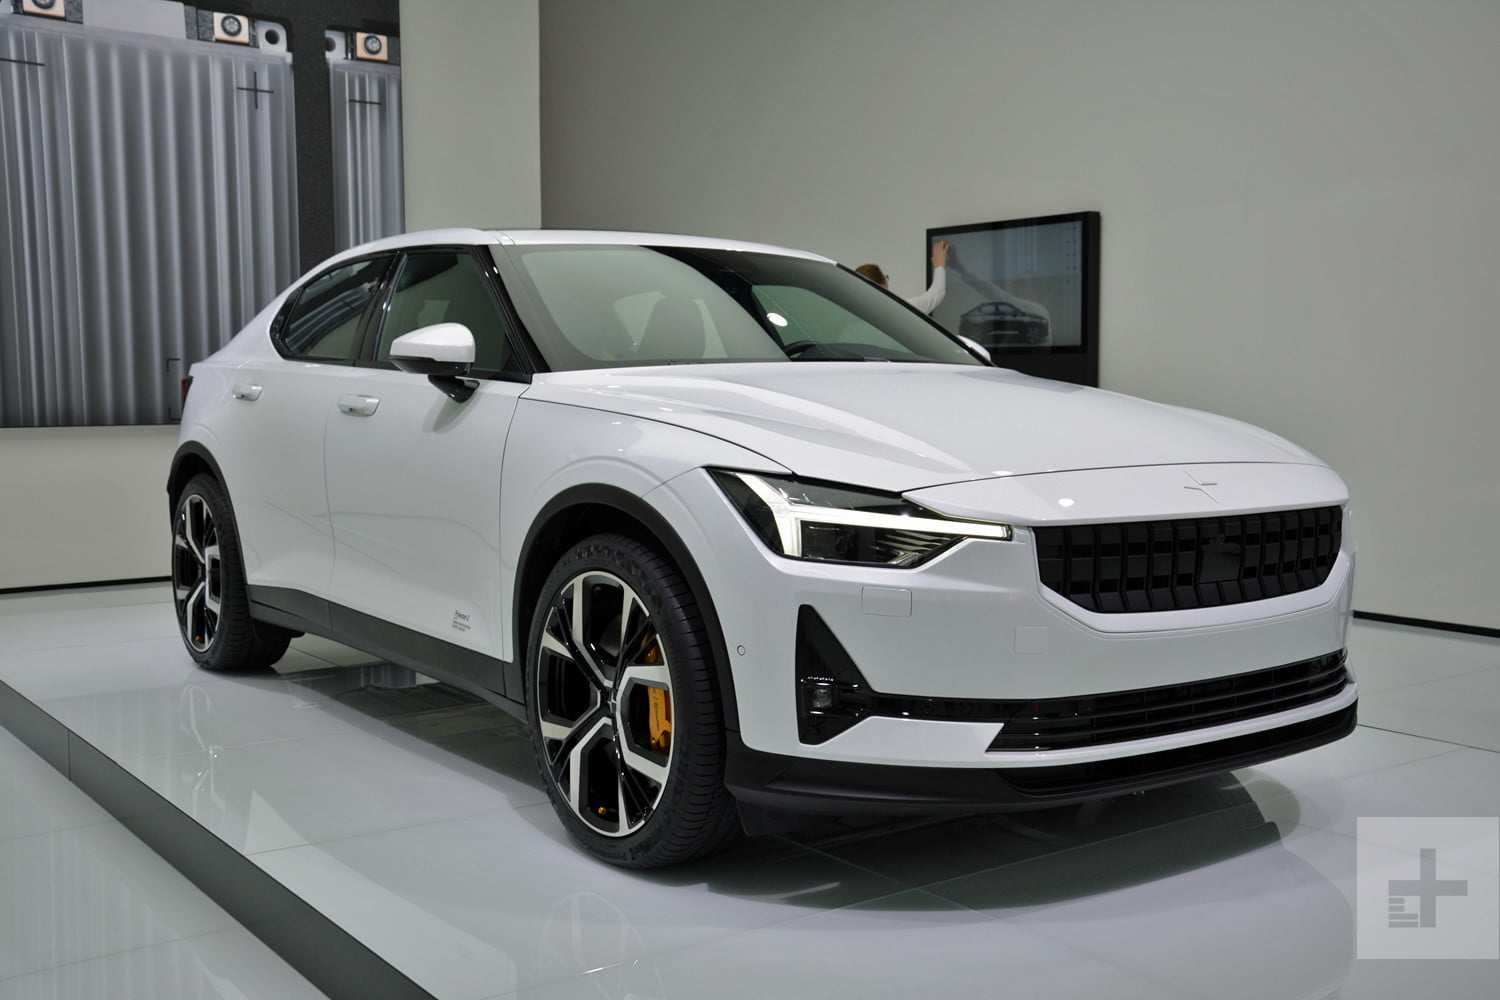 14 All New Volvo Modellar 2019 Rumor Price and Review by Volvo Modellar 2019 Rumor